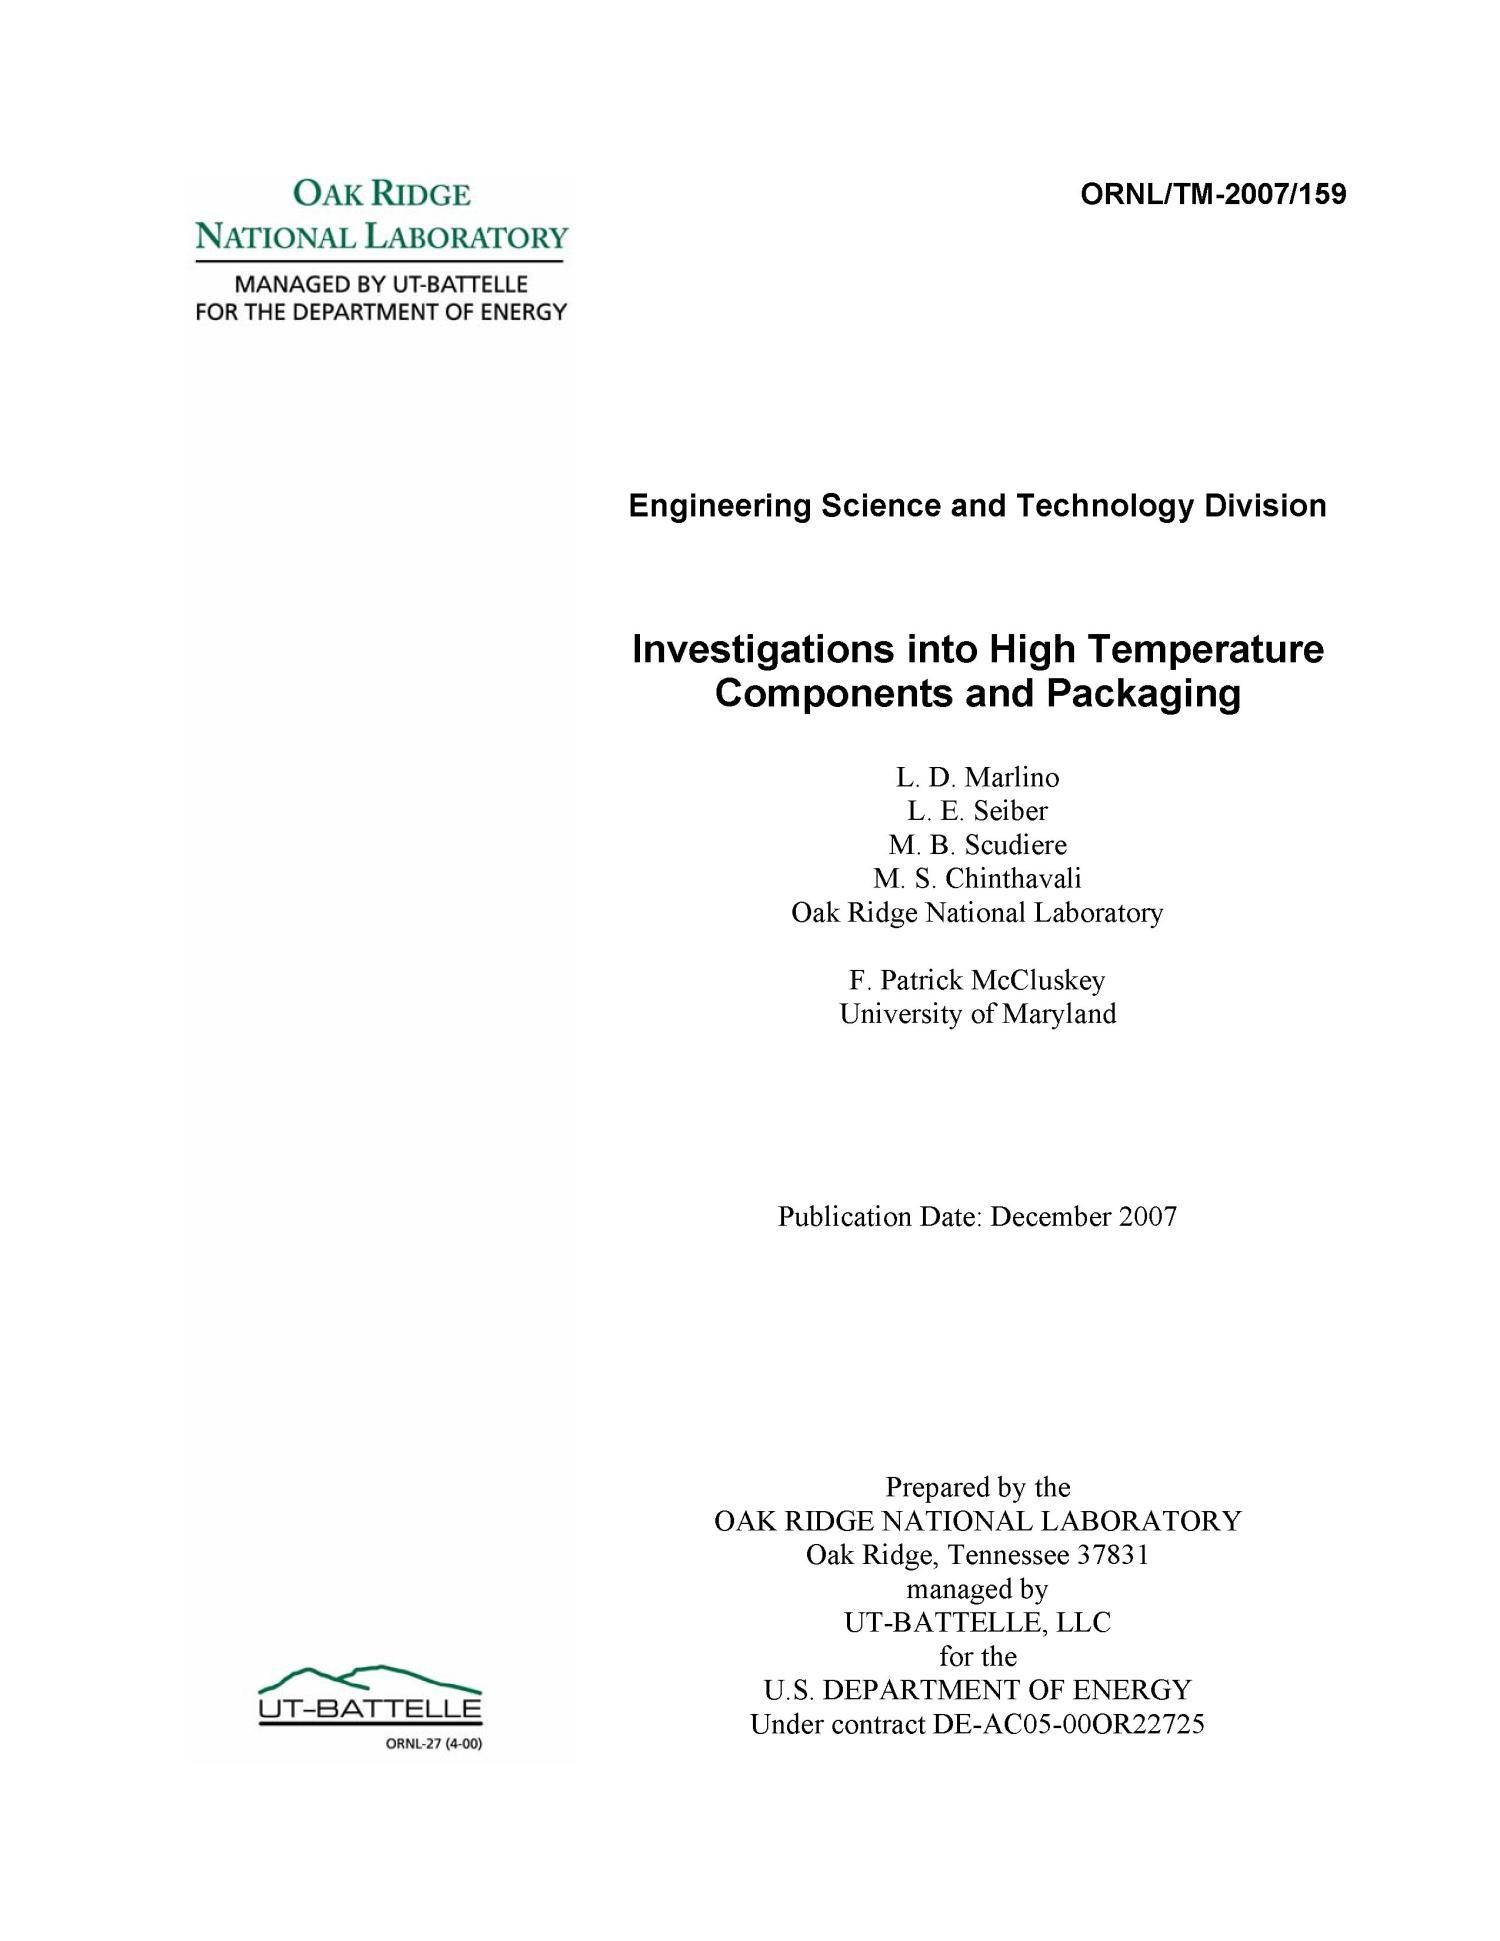 Investigations into High Temperature Components and Packaging                                                                                                      [Sequence #]: 2 of 109